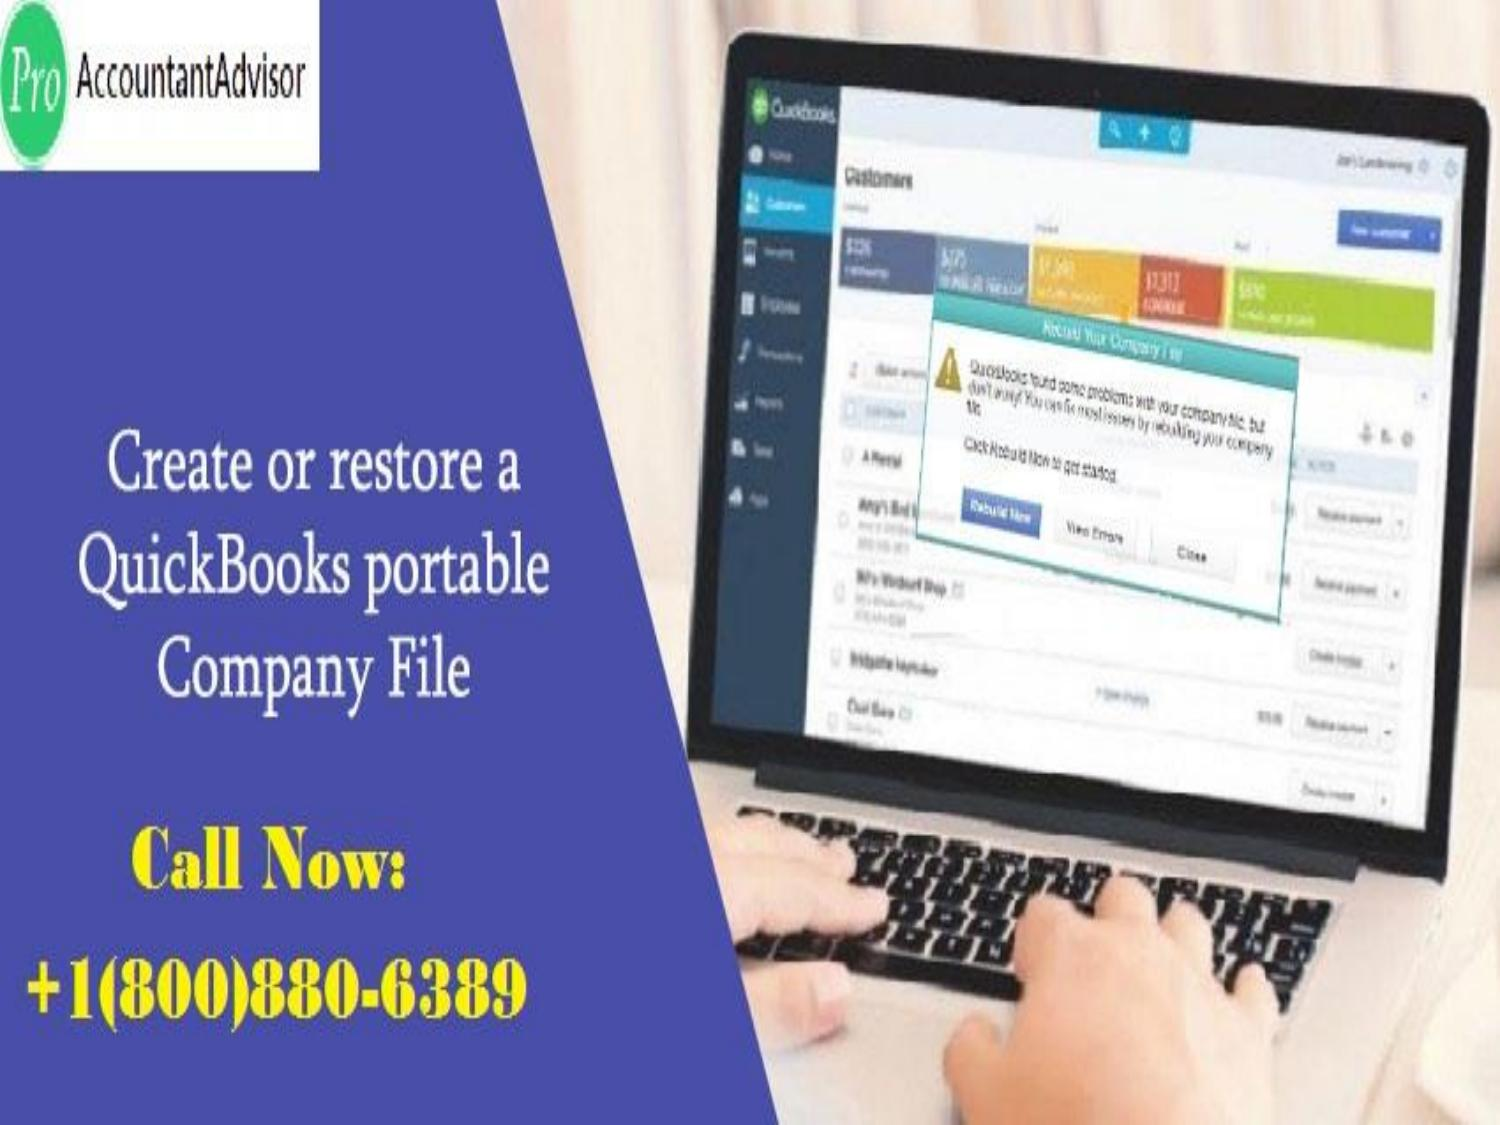 Steps to Create or restore a QuickBooks portable company